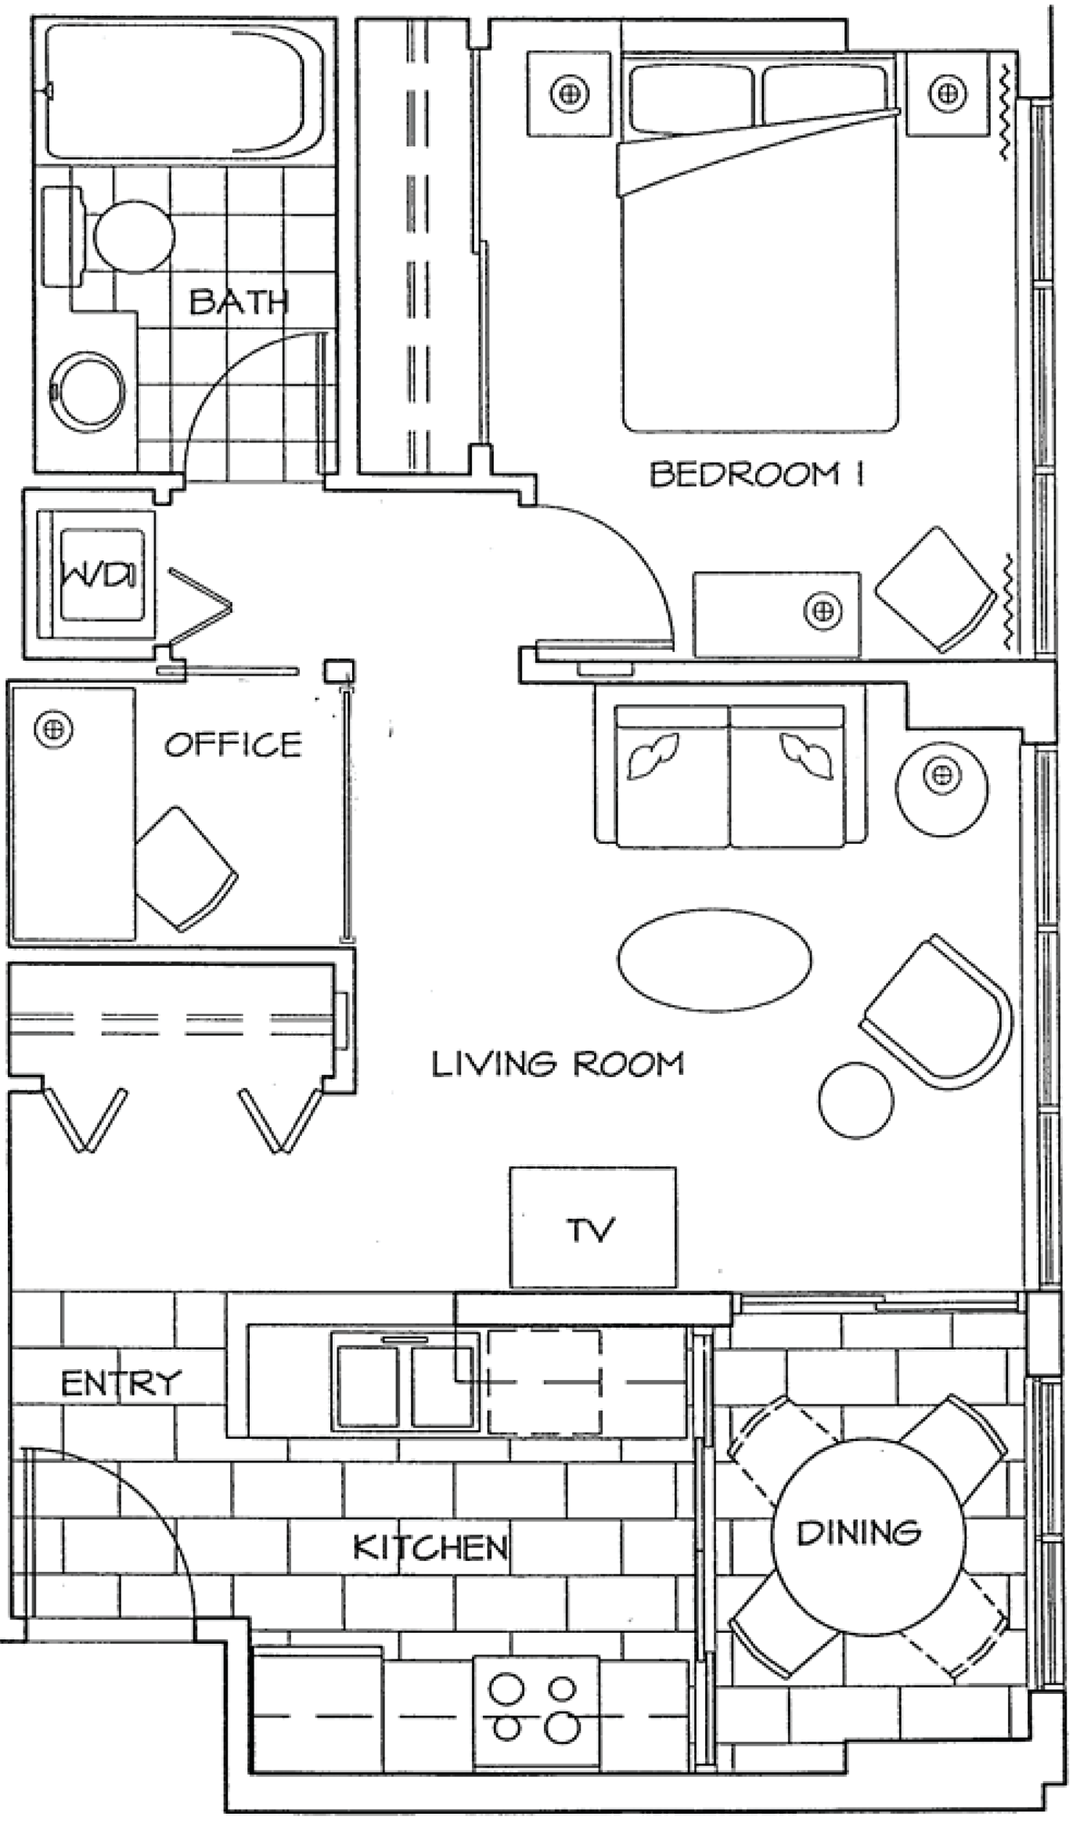 Floor Plan of One Bedroom and Office Apartment at The Residences on Georgia